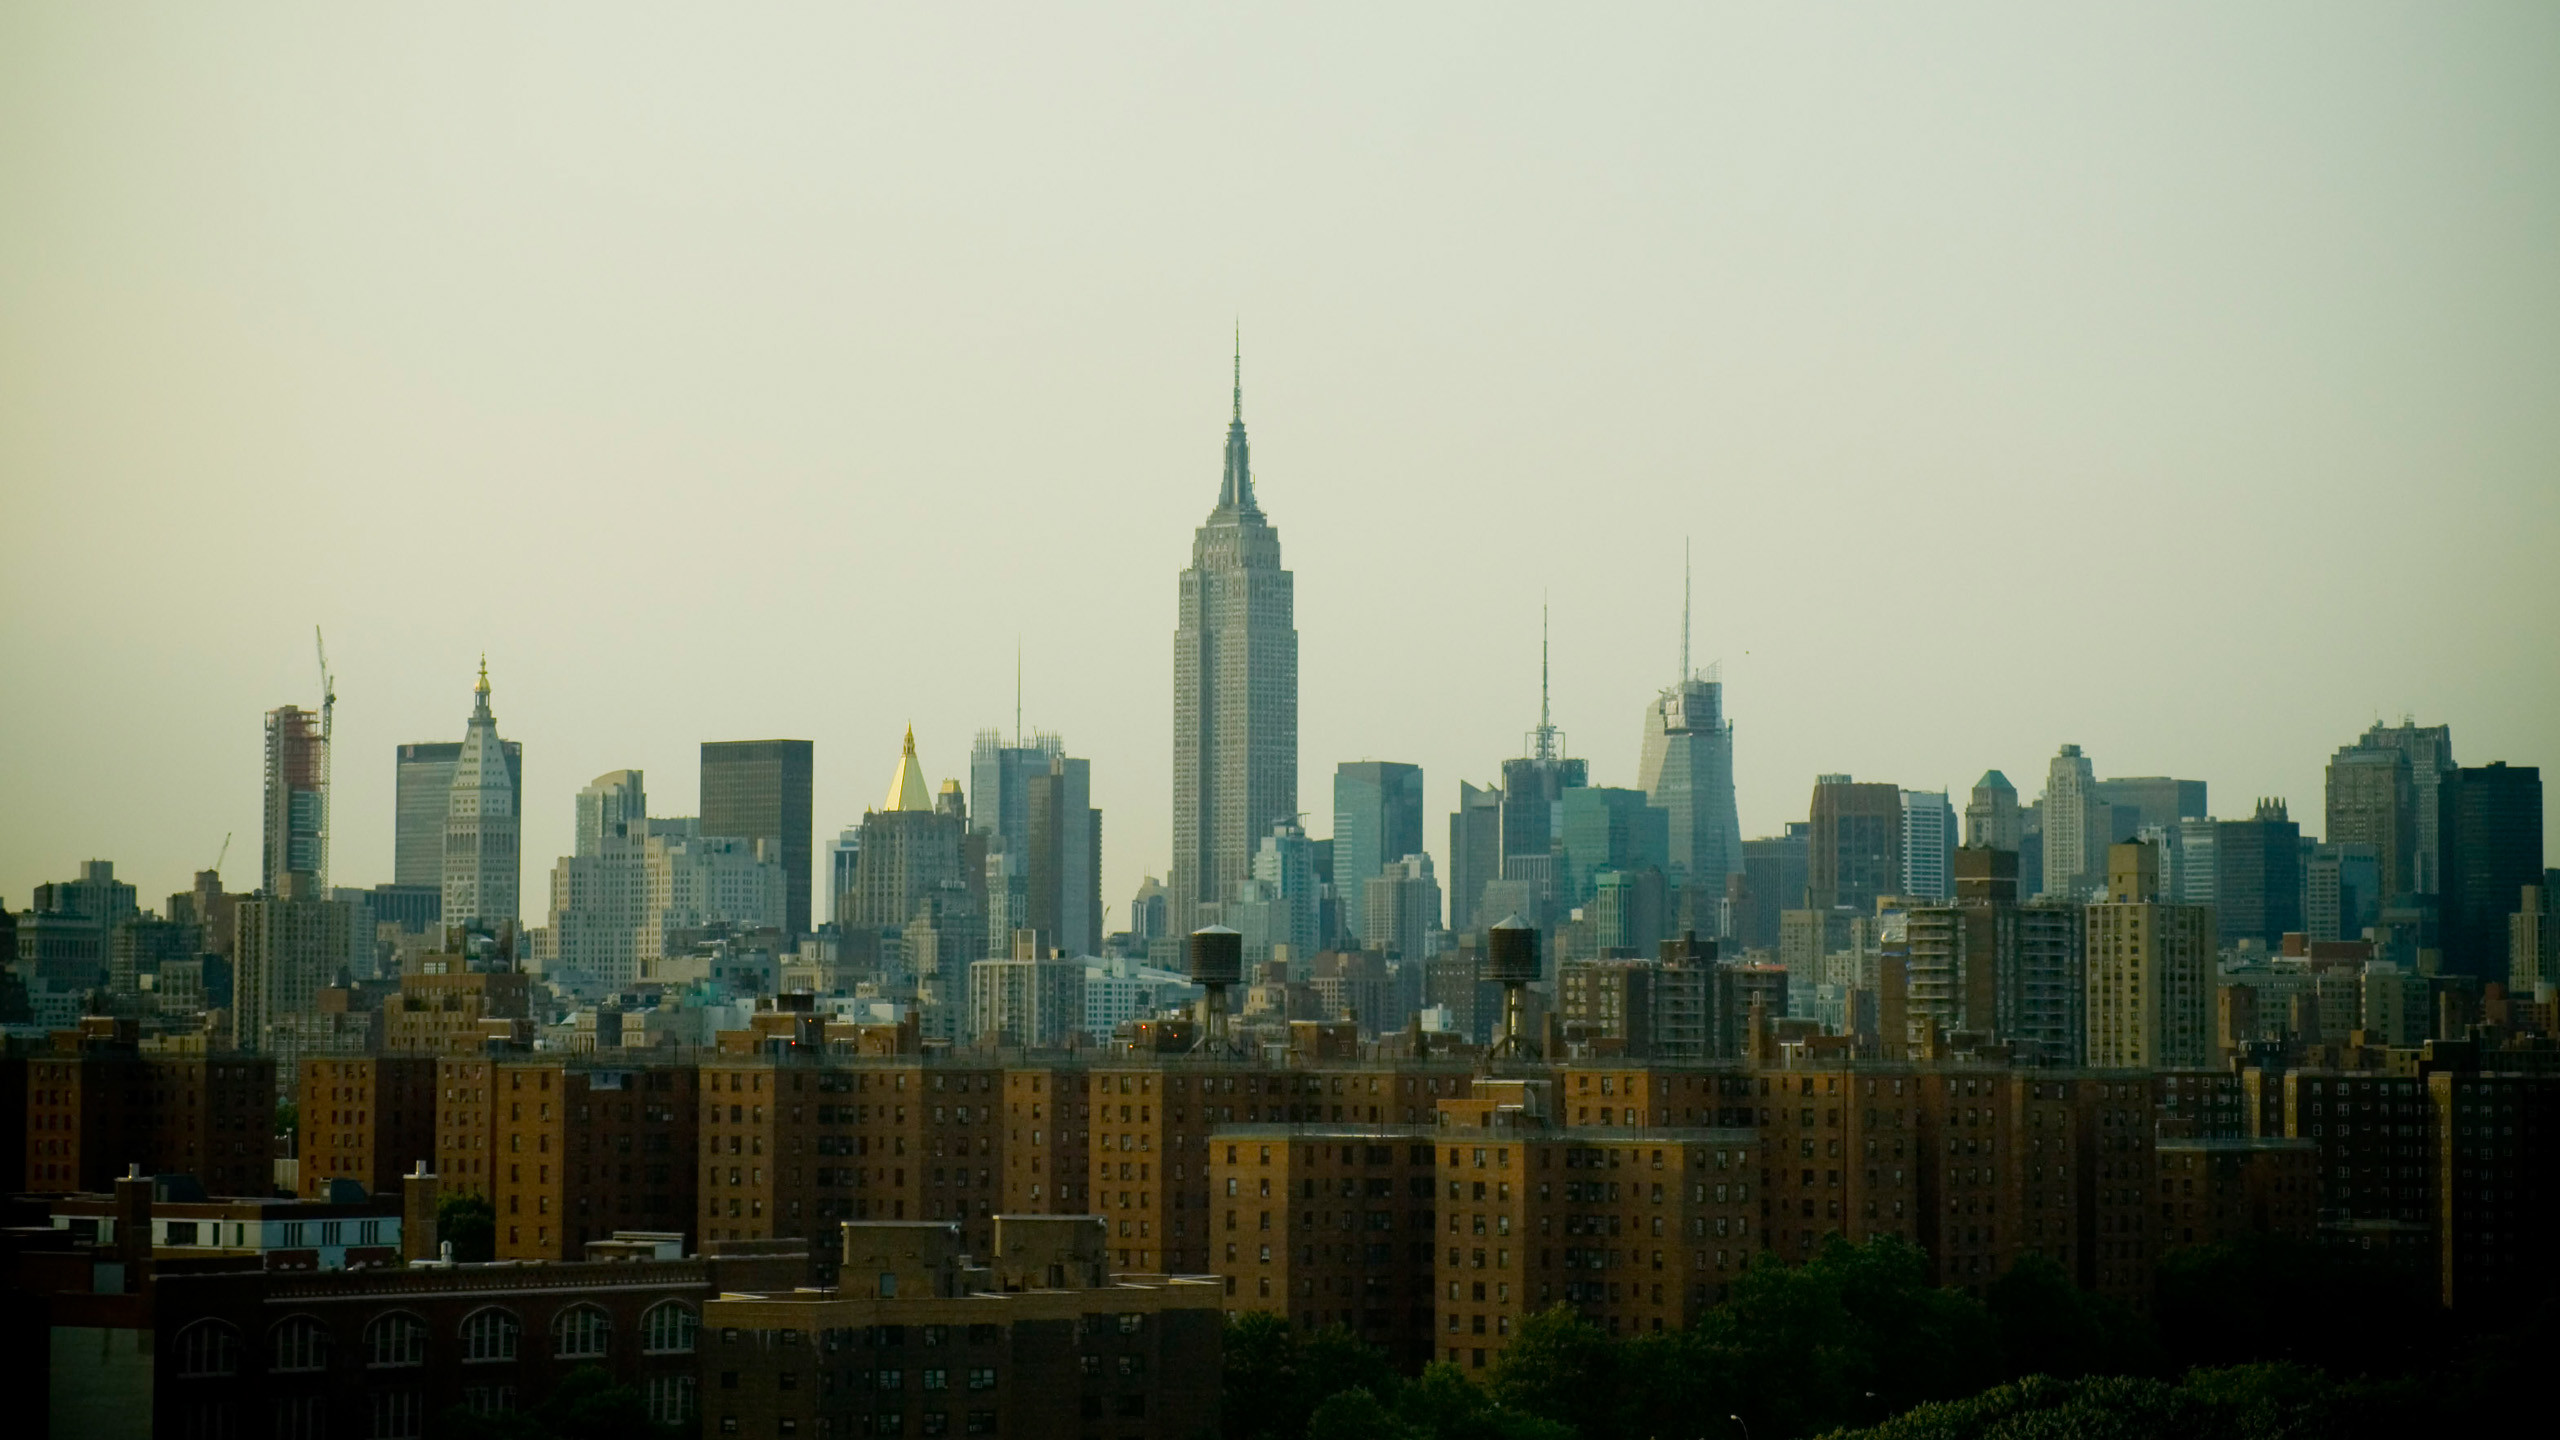 2560x1440 Empire State Building Wallpaper Background 51592